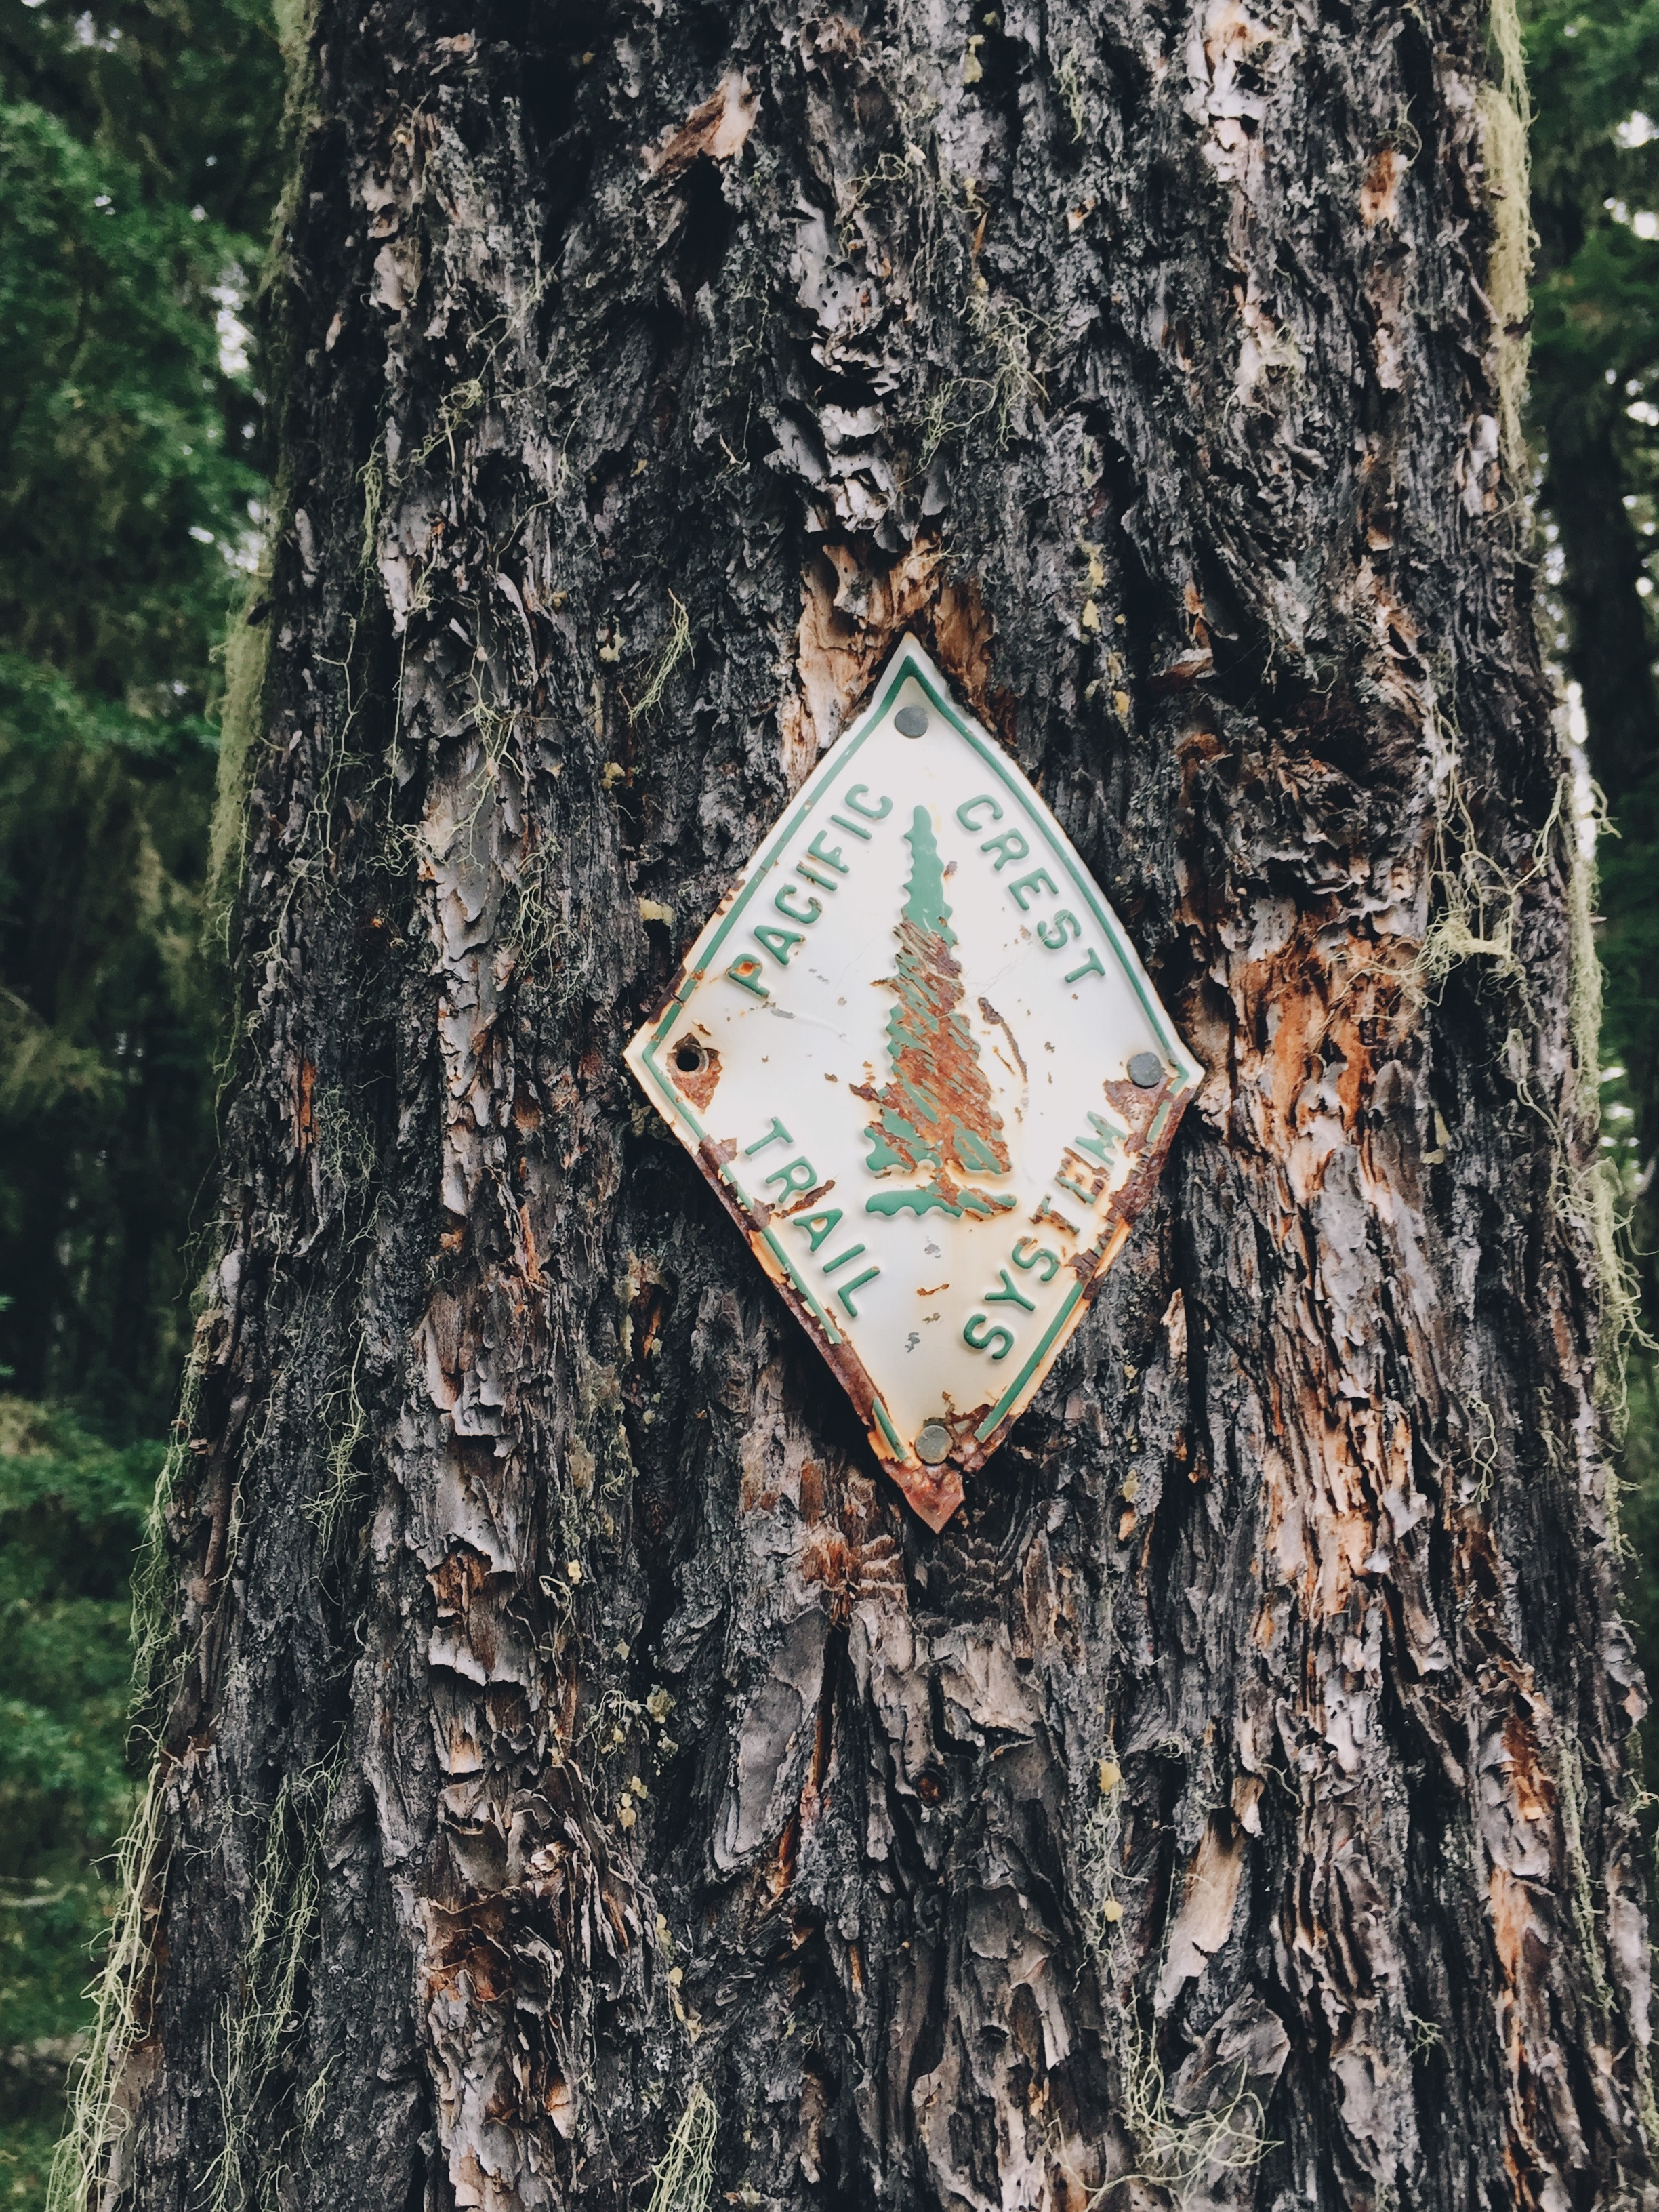 Old trail markers